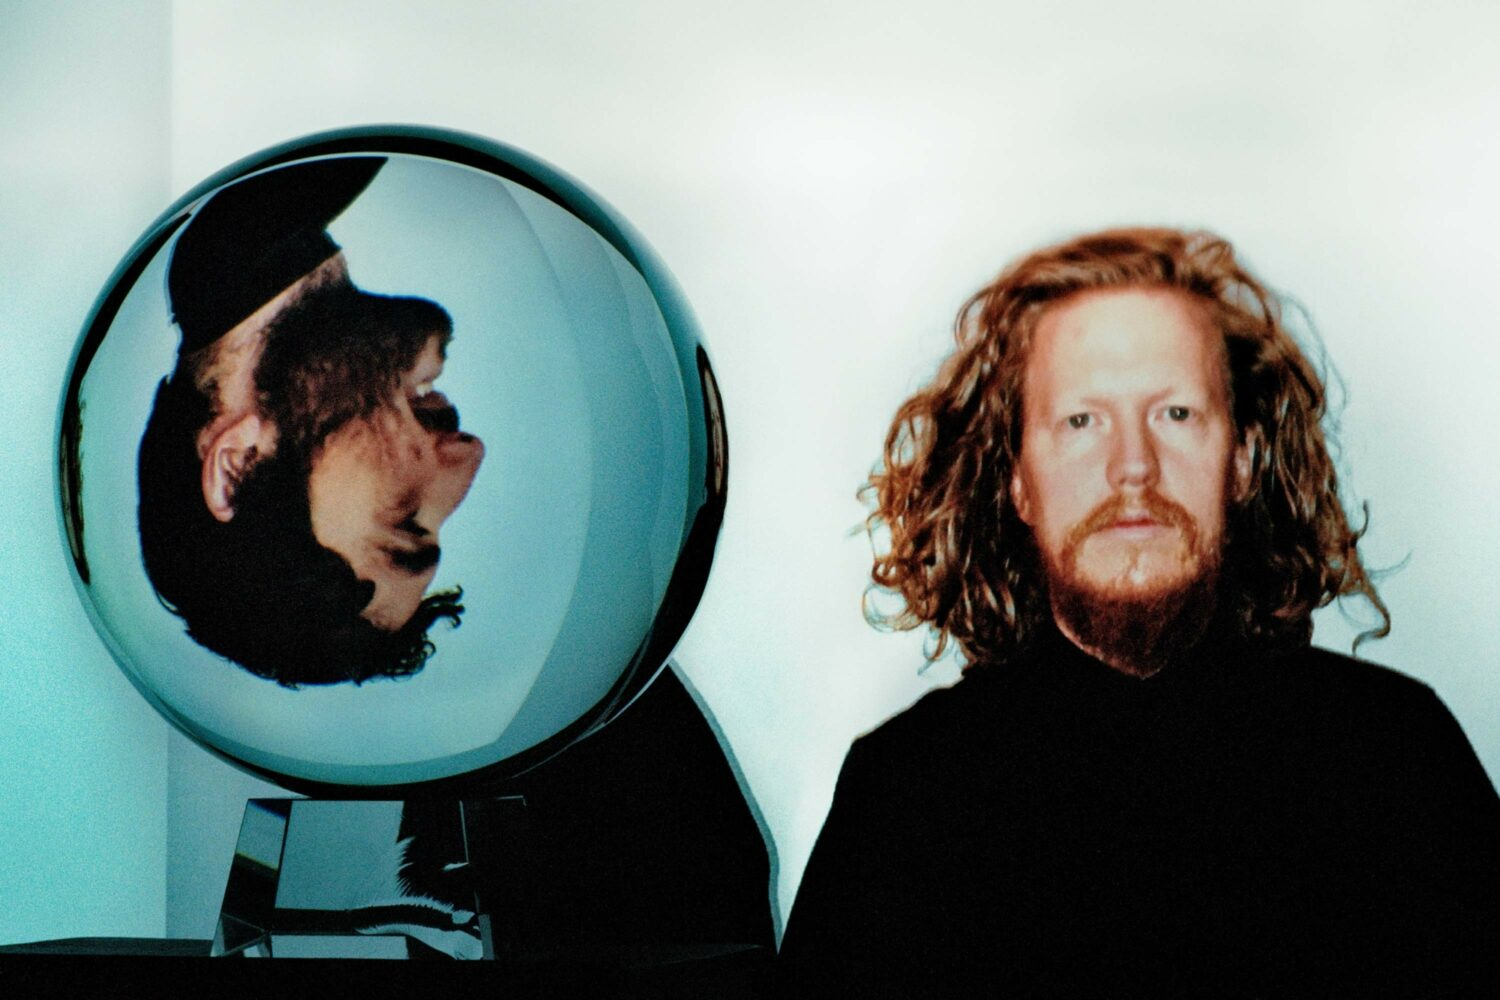 Darkside share 'Lawmaker' from forthcoming album